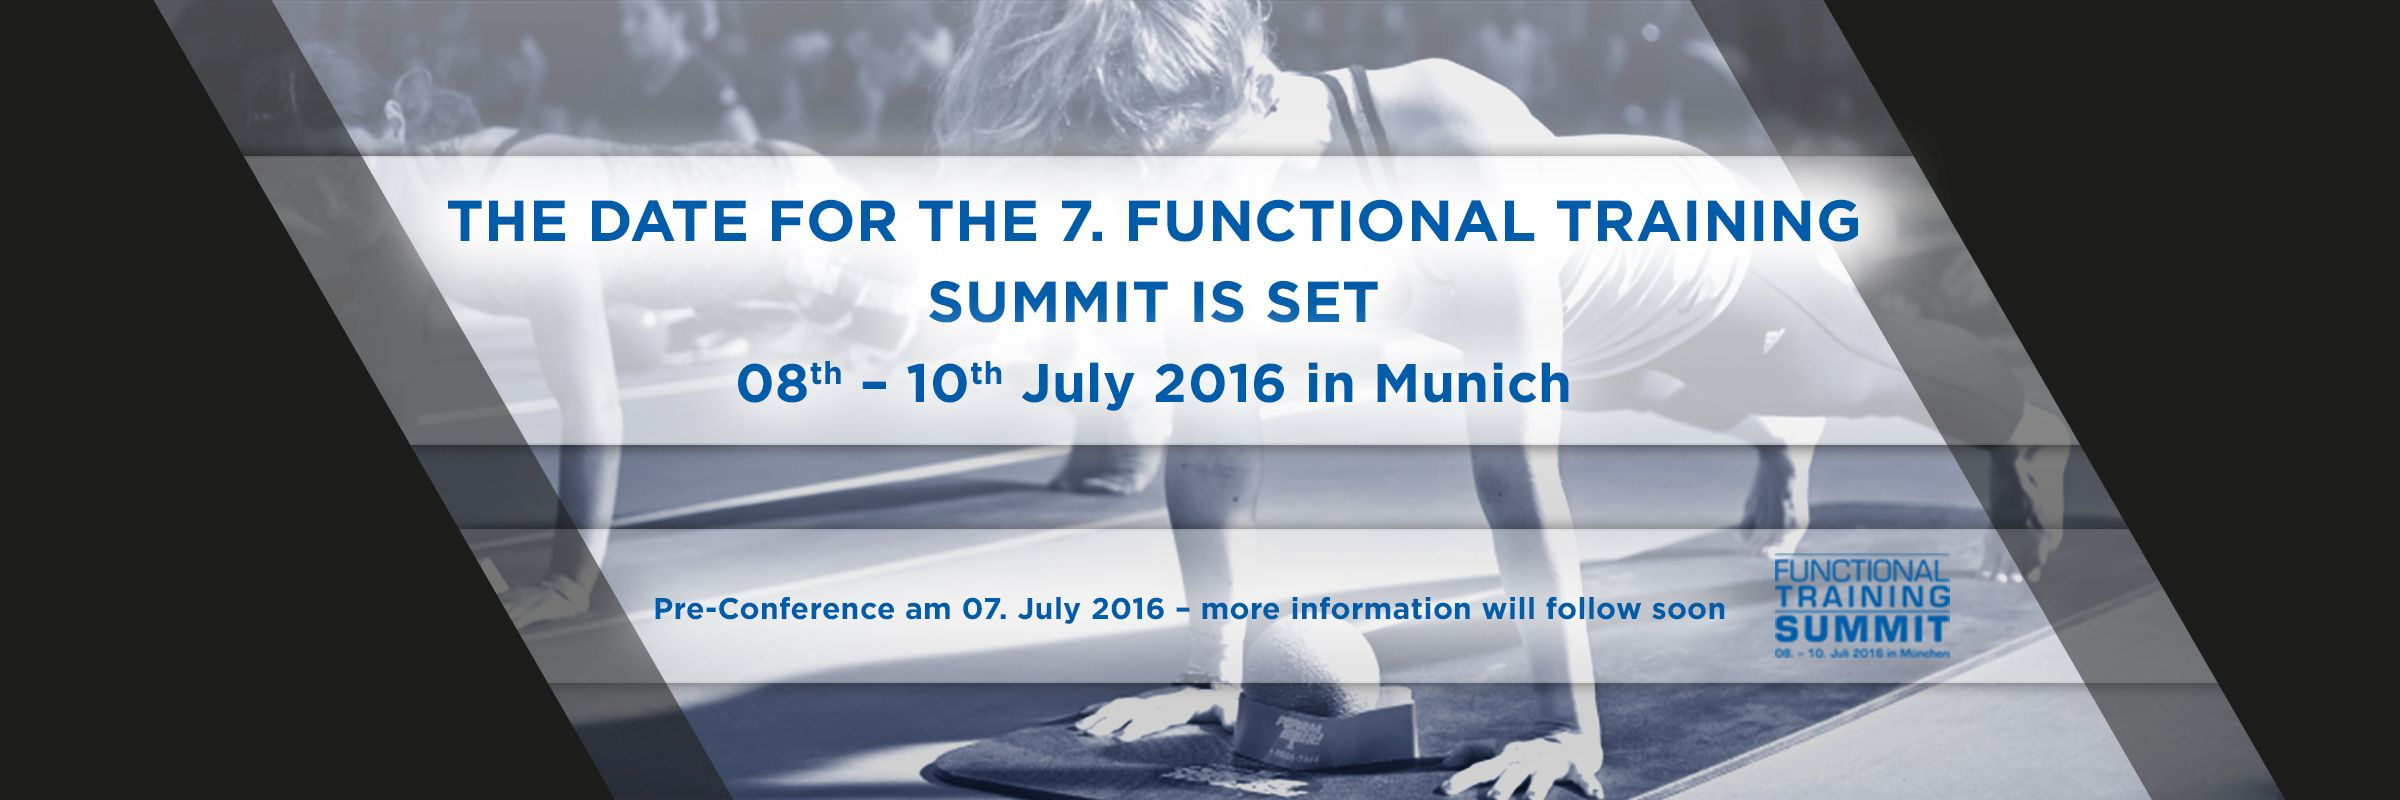 The date for the 7. Functional Training Summit is set